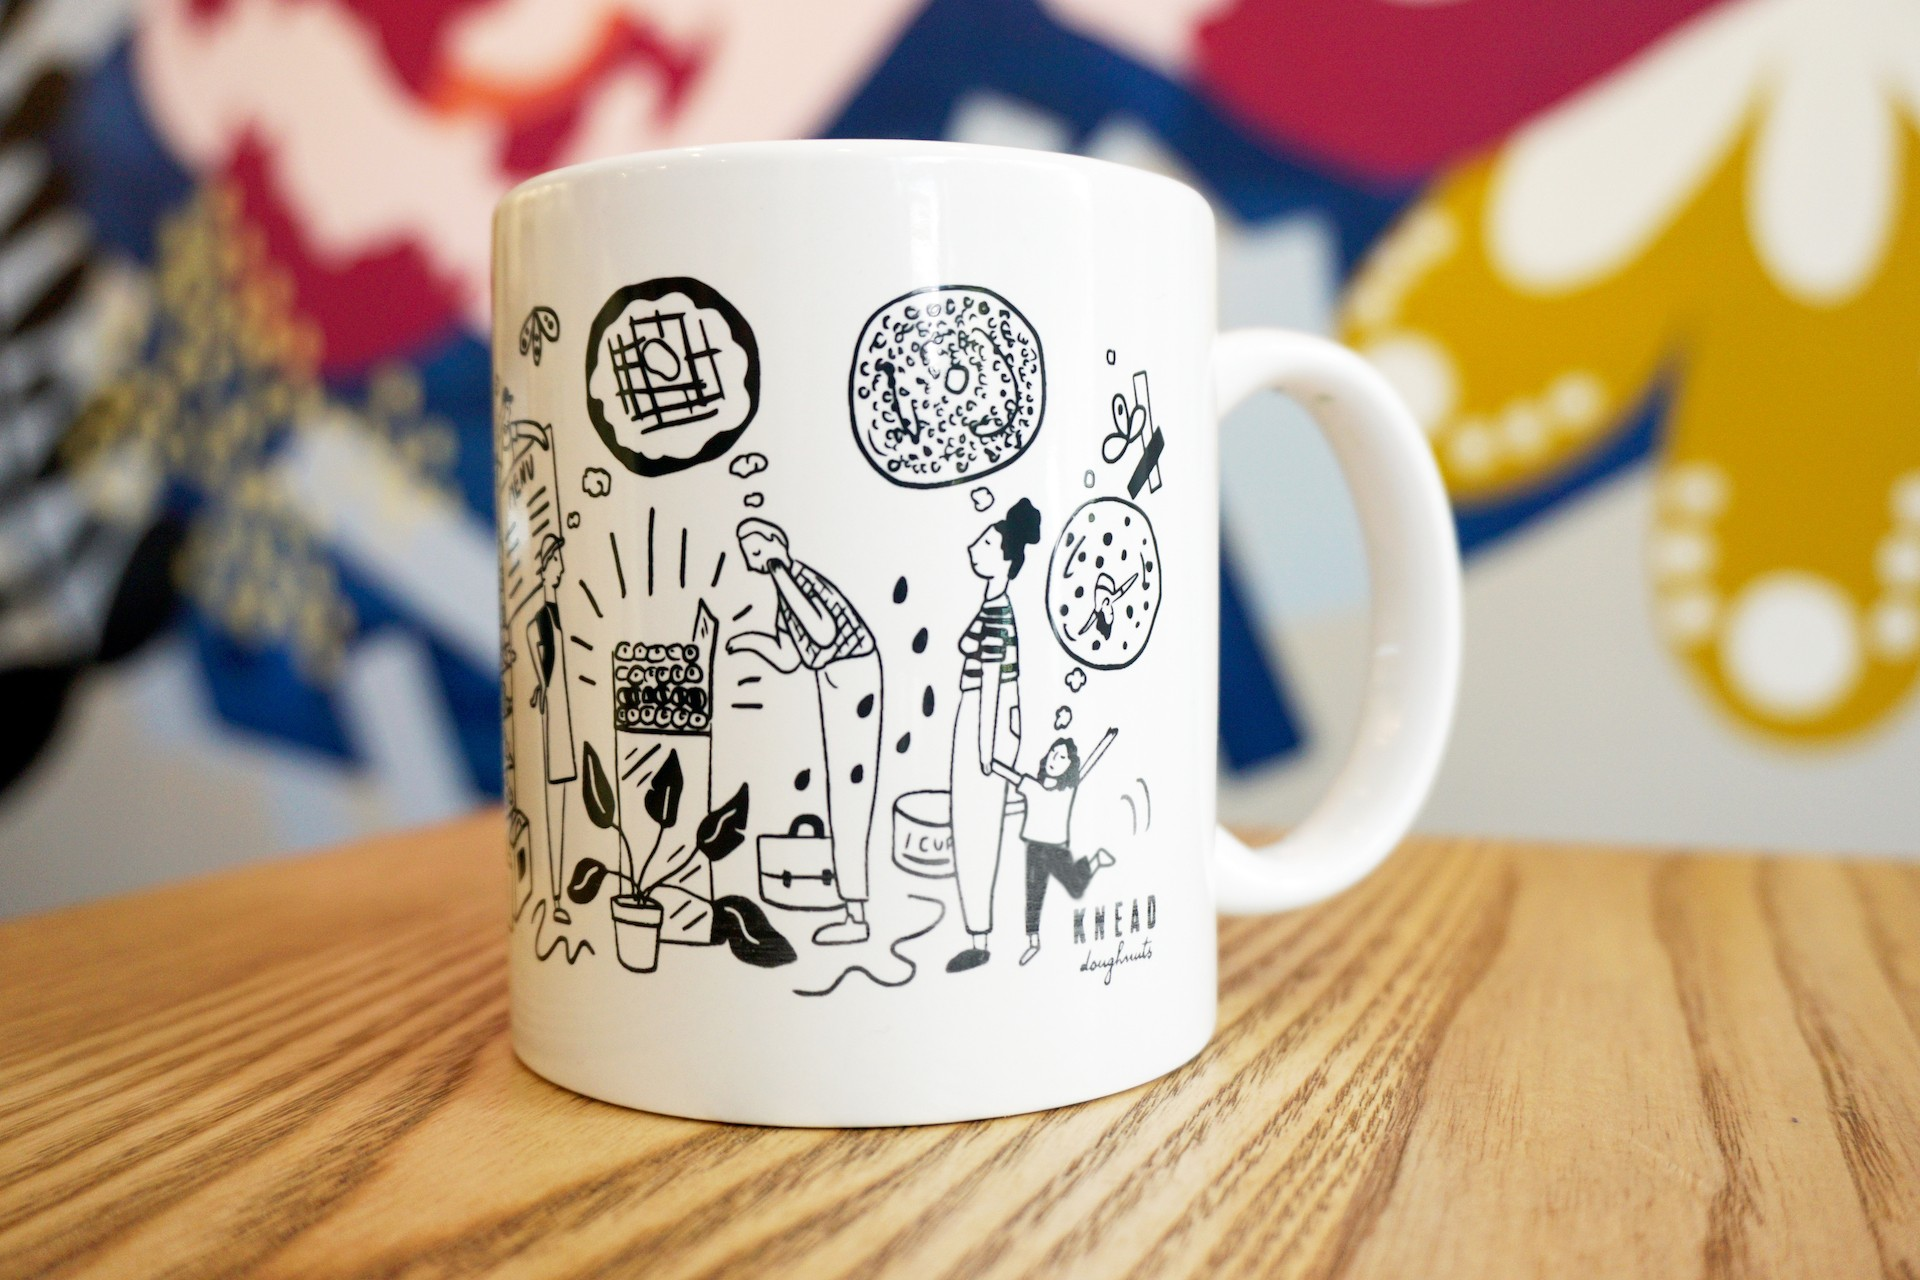 White ceramic mug on wooden table with colorful mural in background. Mug illustration includes oversized kitchen items, donuts, bakers and Knead customers..